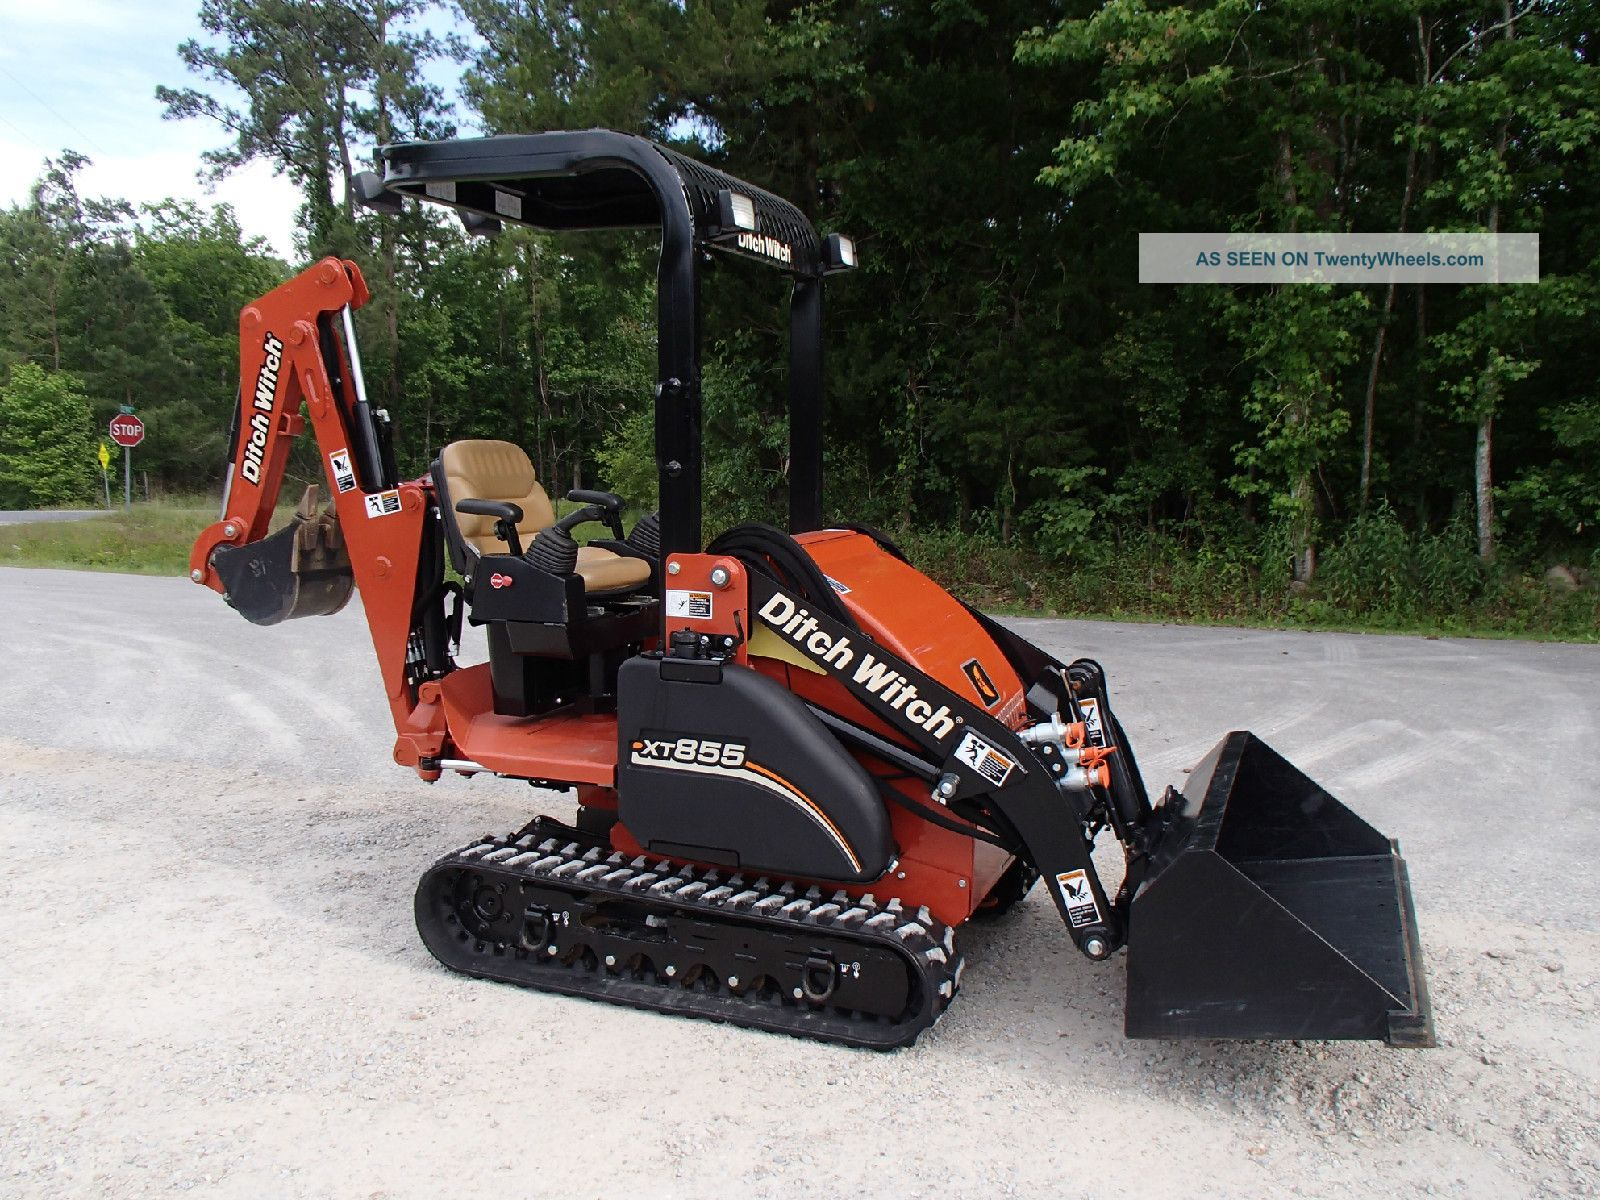 2012_ditch_witch_xt855_skid_steer__backhoe__excavator__heavy_equipment_1_lgw ditch witch track loader ditch free image about wiring diagram Ditch Witch SK500 Specs at eliteediting.co